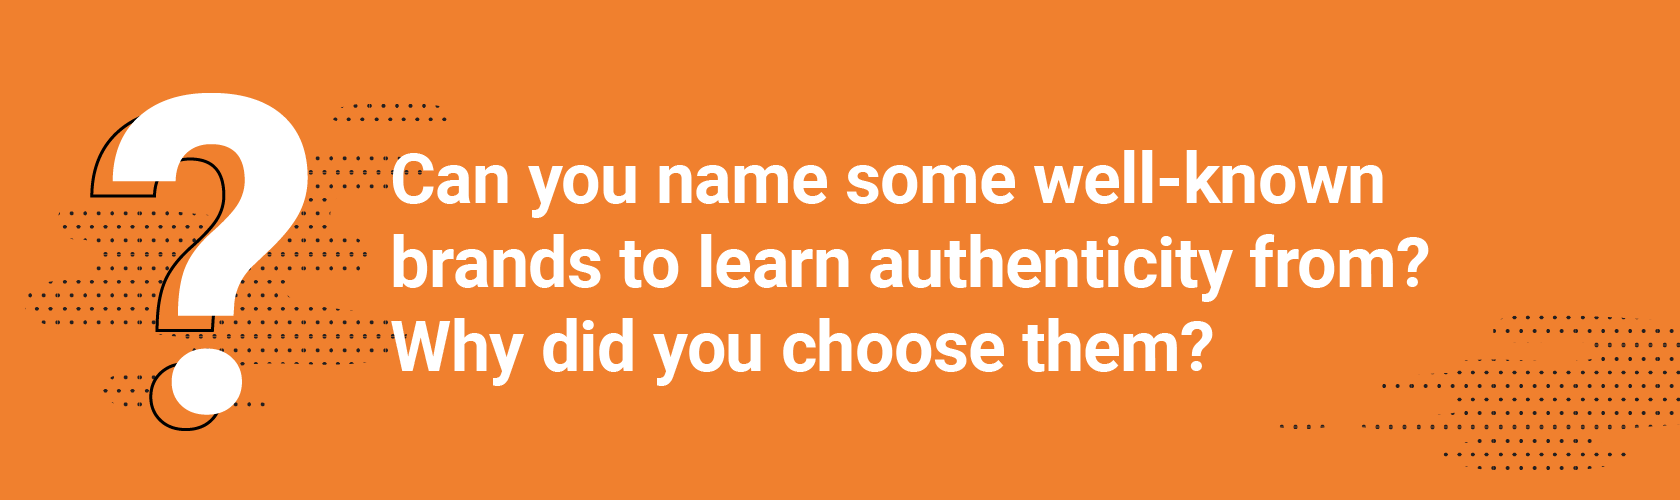 Can you name some well-known brands to learn authenticity from? Why did you choose them?